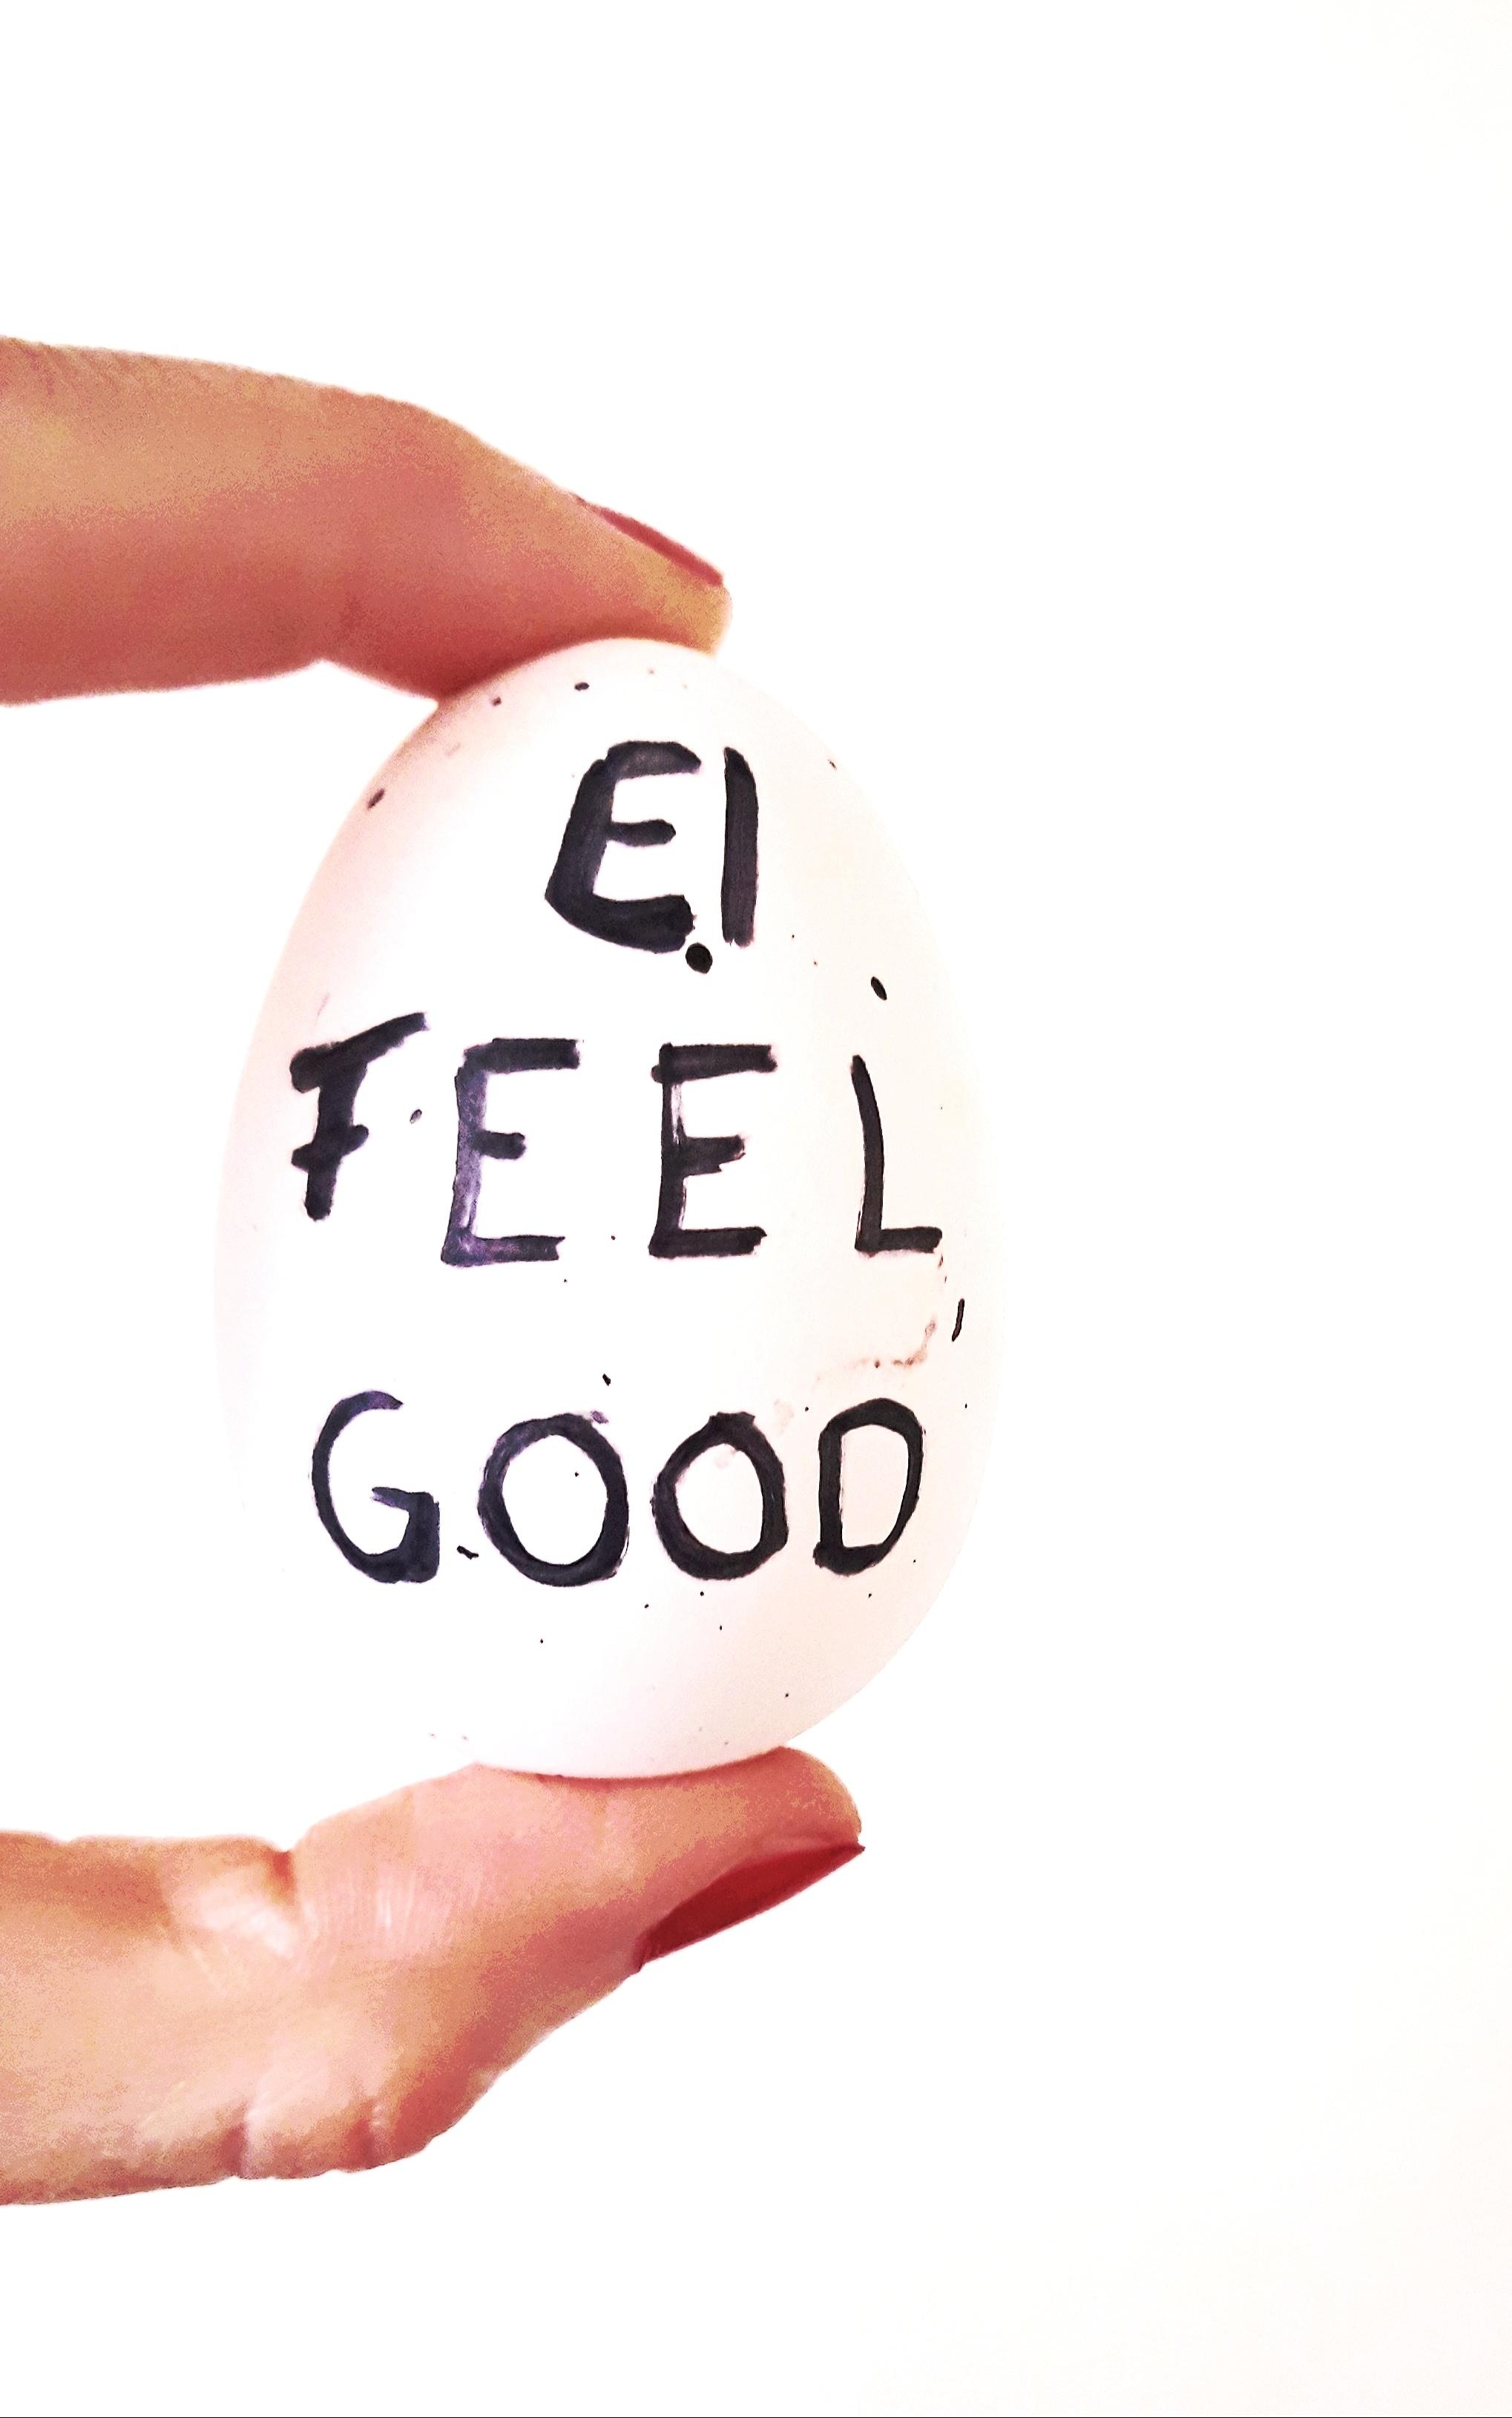 #eifeelhood #easter #osterei #postivevibes #upcyclinglovediy #doityourself